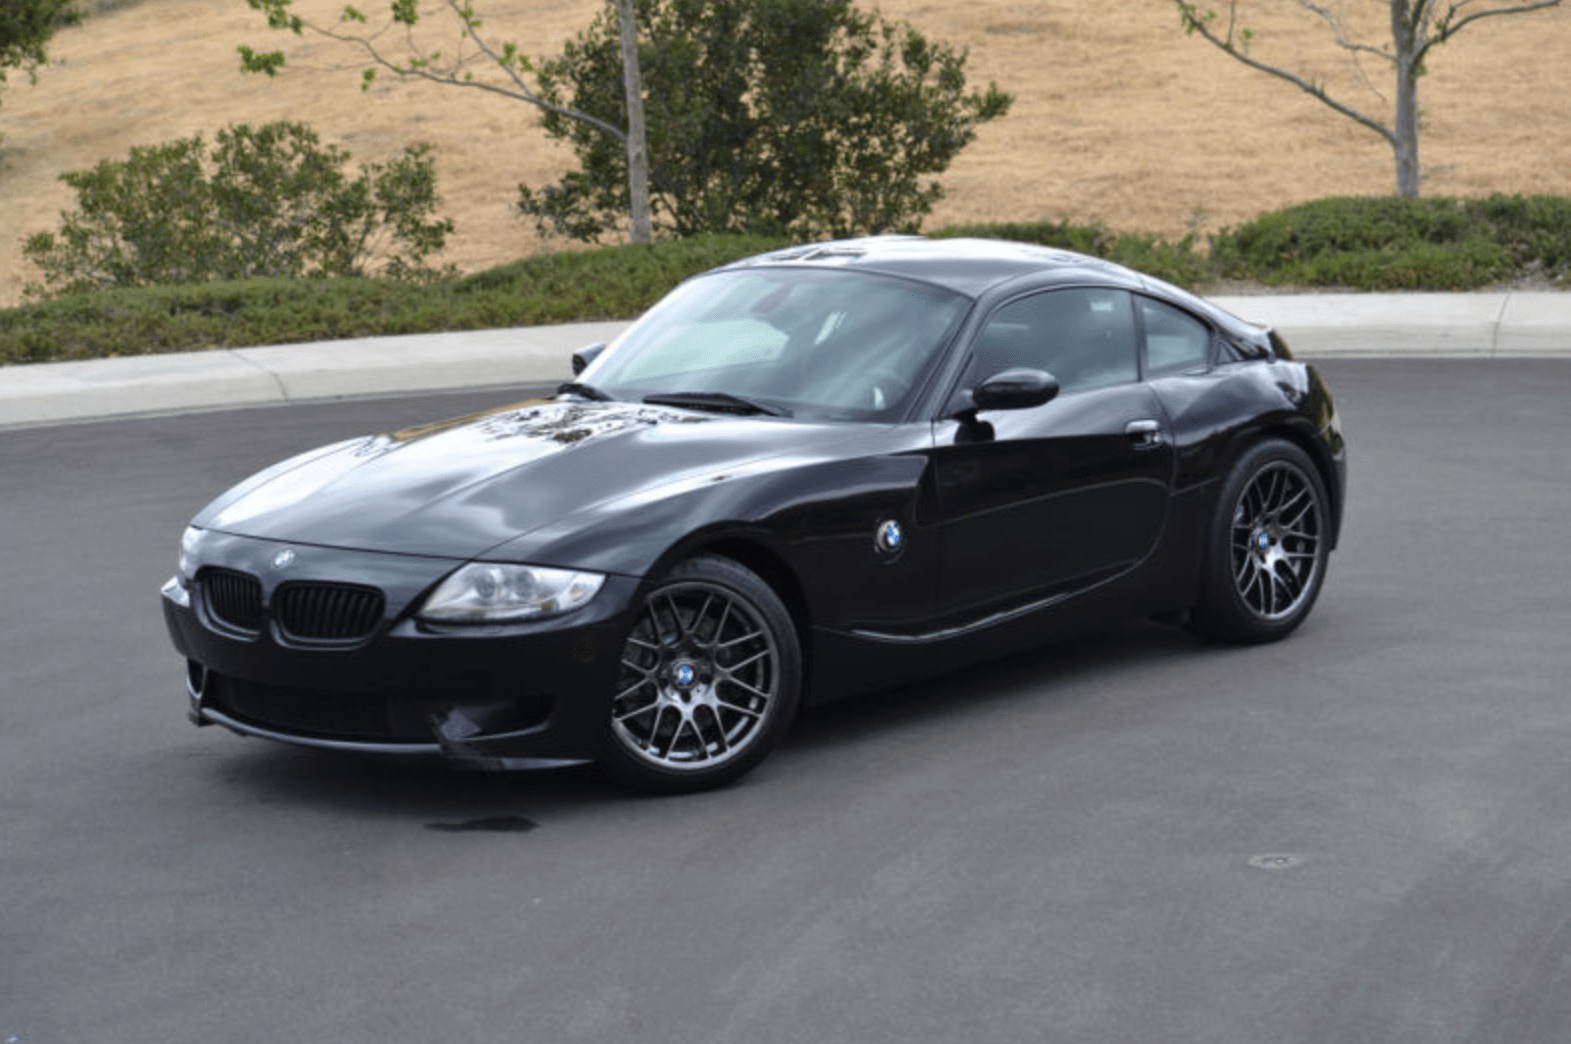 2007 Z4 M Coupe German Cars For Sale Blog